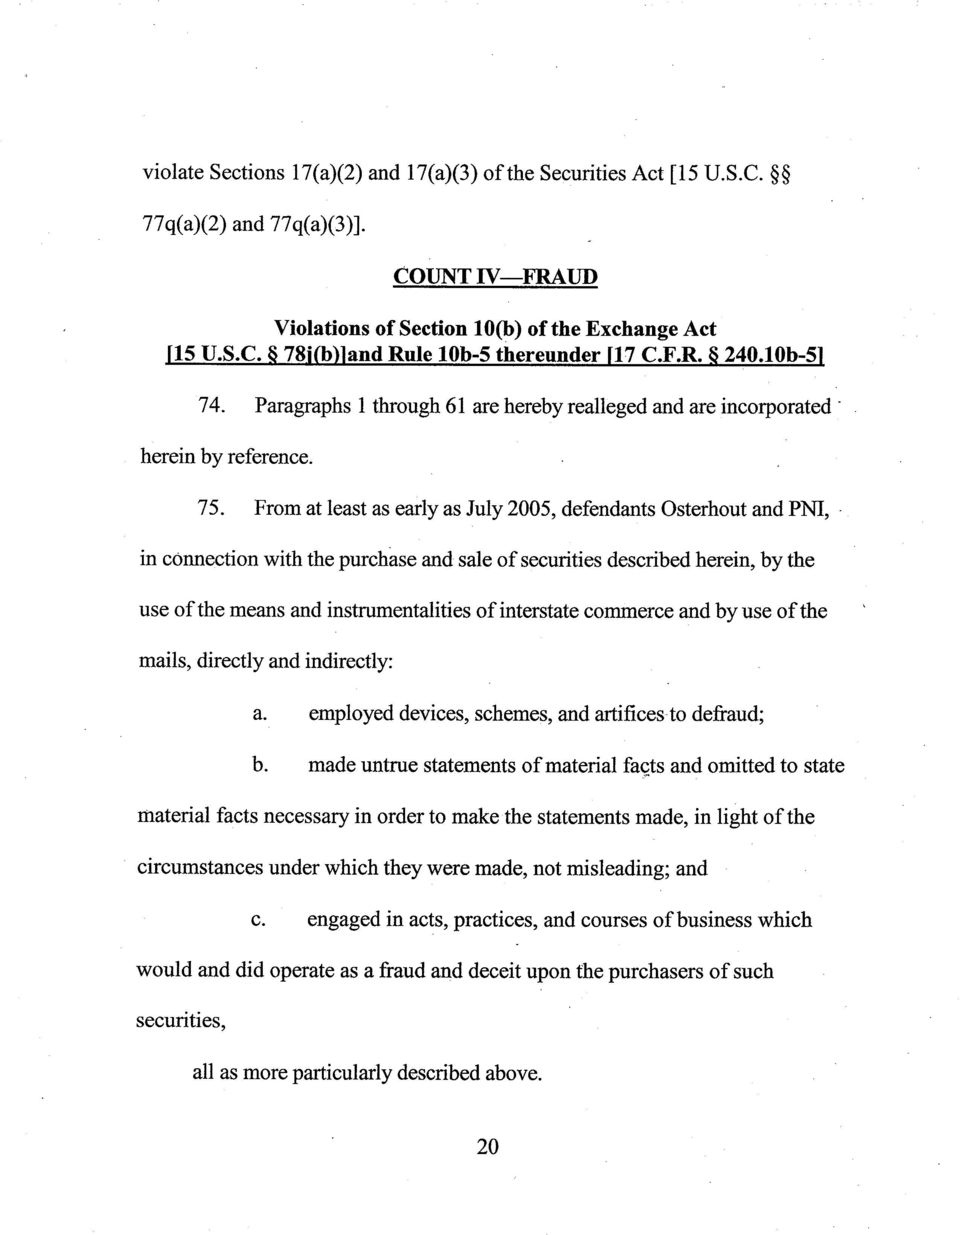 From at least as early as July 2005, defendants Osterhout and PNI, in connection with the purchase and sale of securities described herein, by the use of the means and instrumentalities of interstate